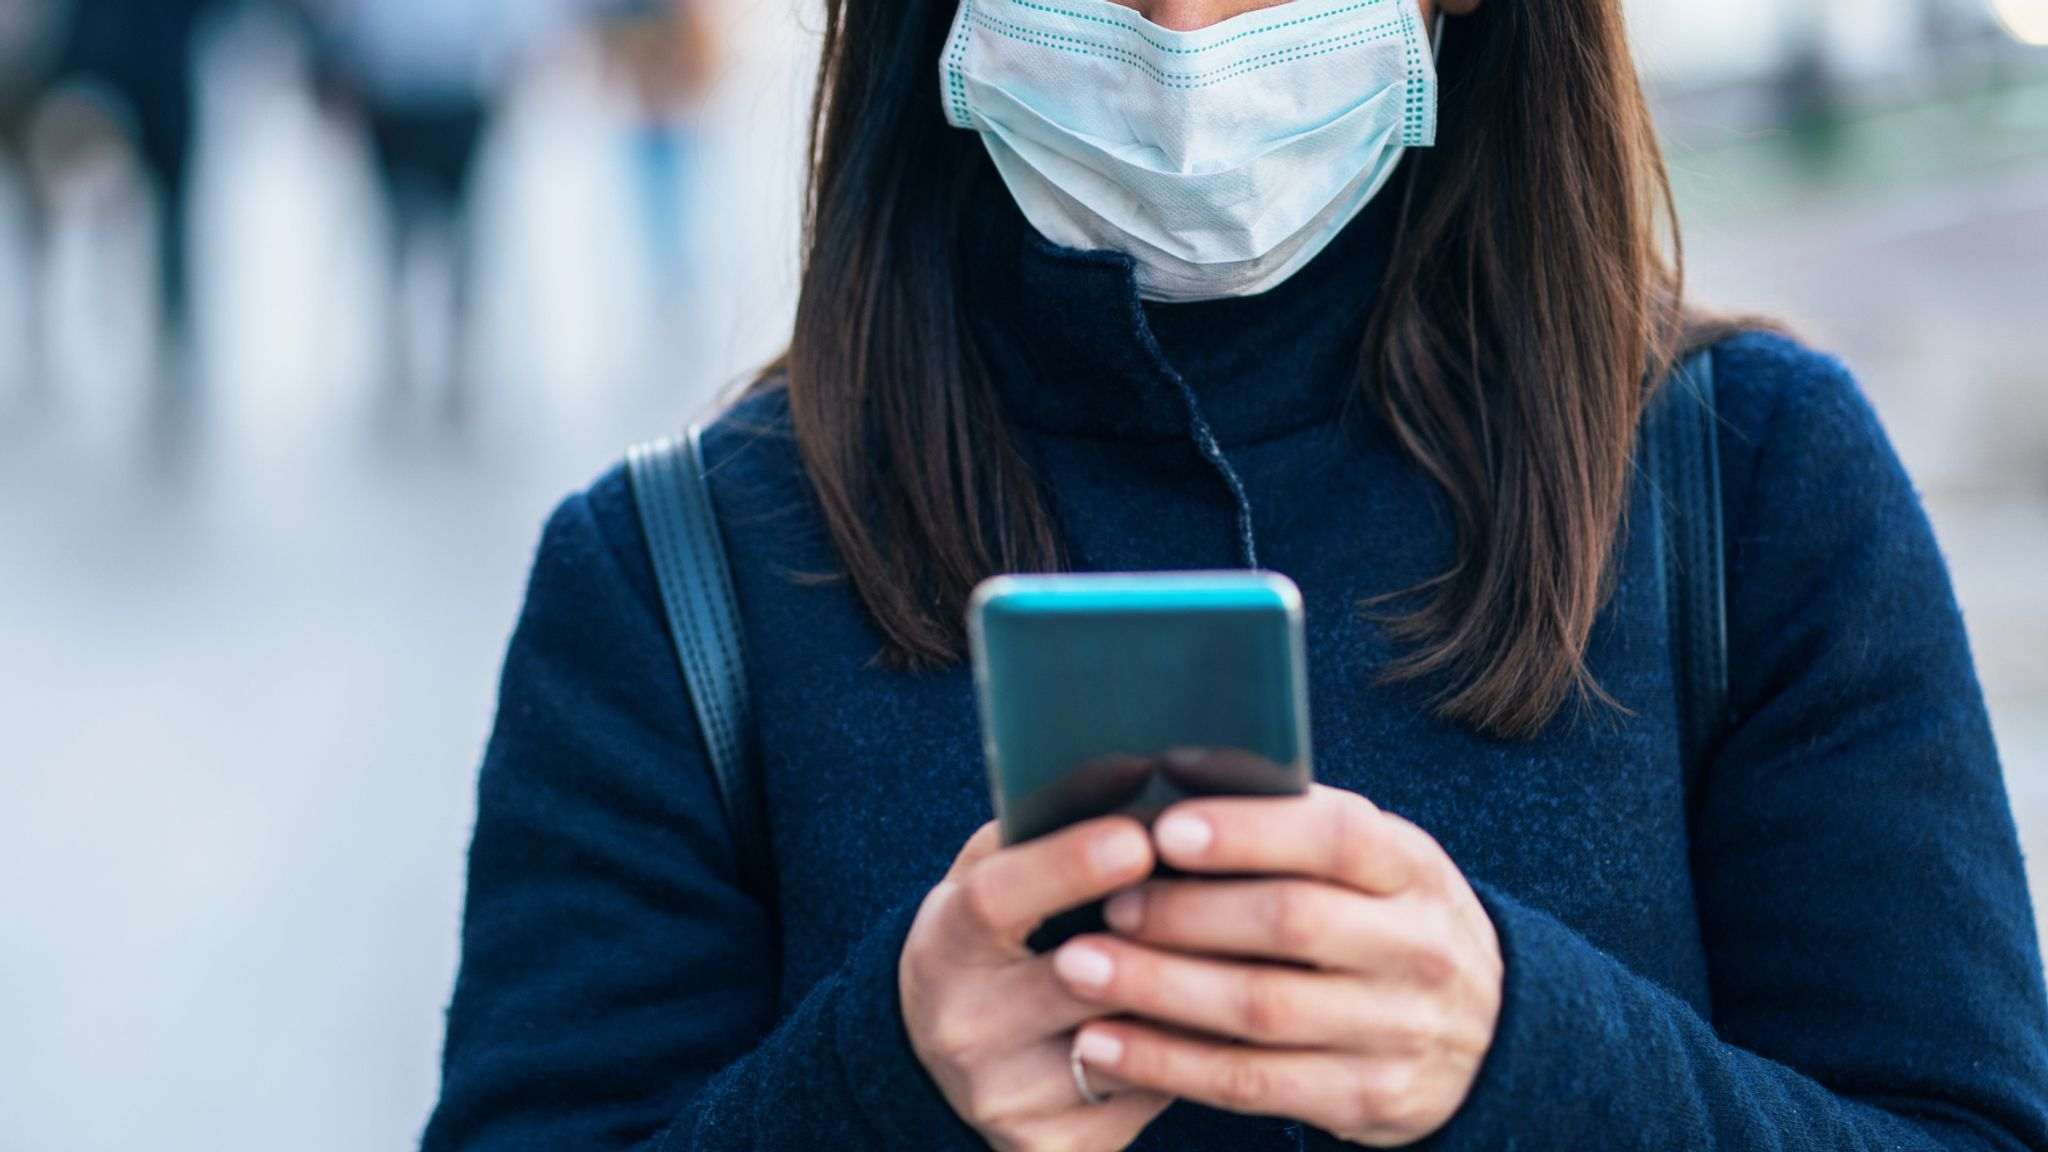 Coronavirus: Apple and Google phones to track down people with COVID-19